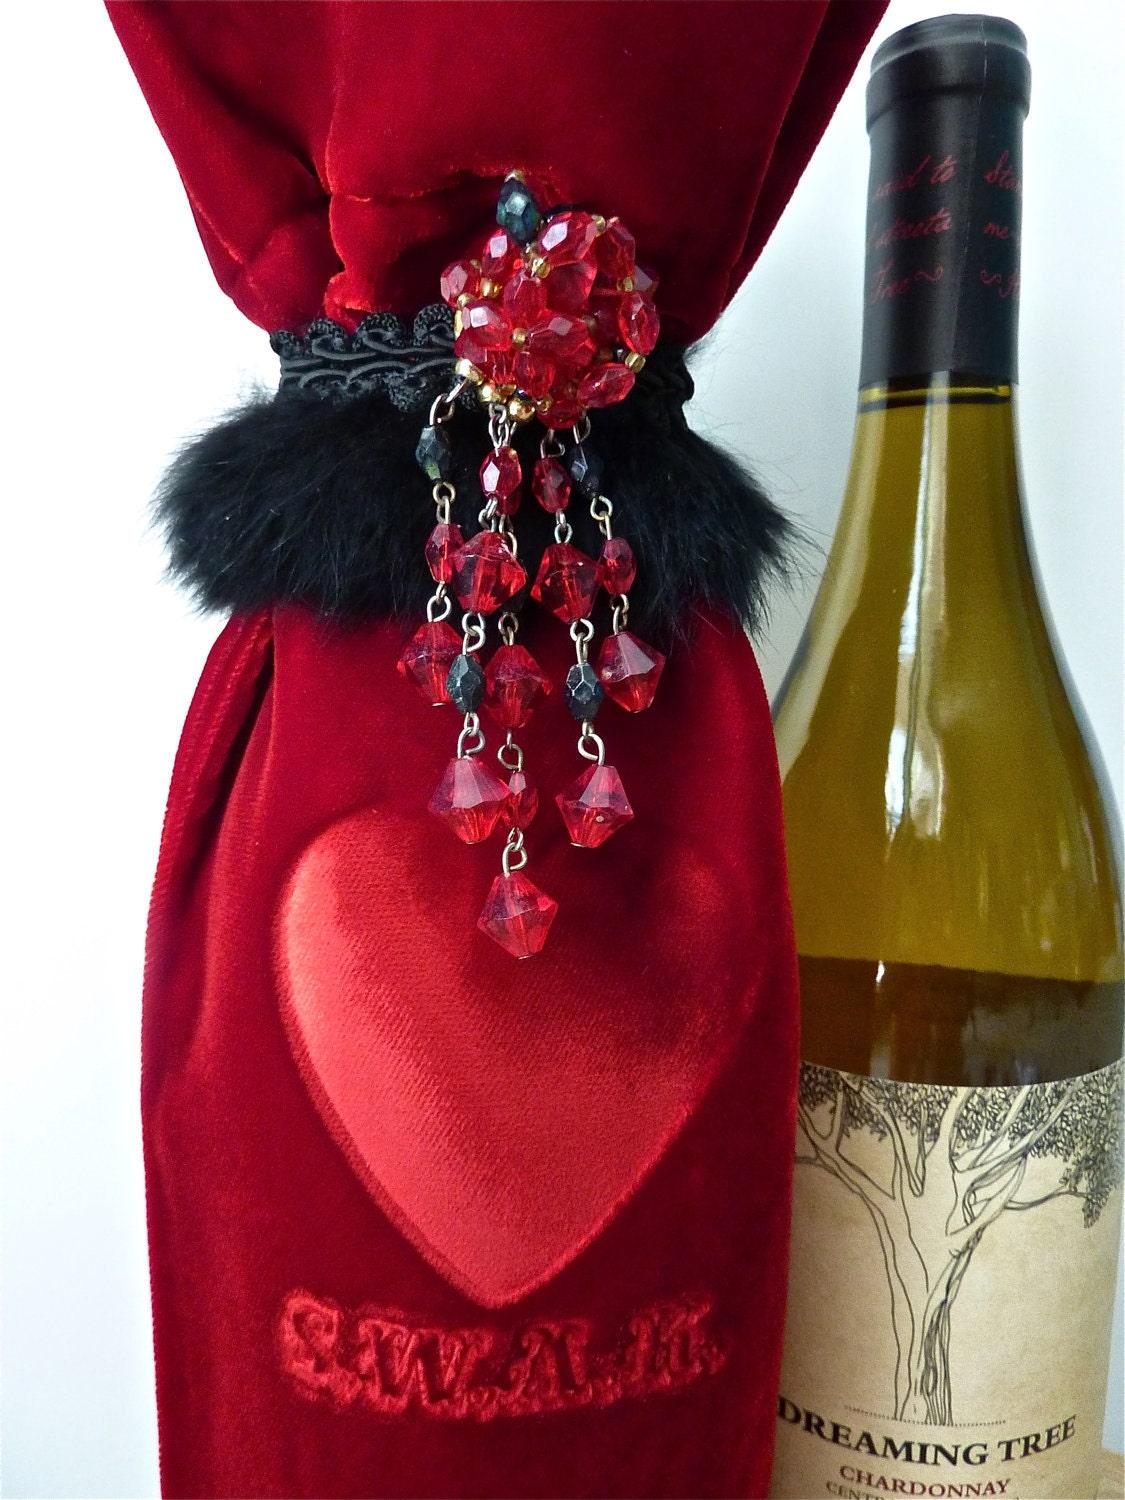 Velvet Wine Bag Valentine S.W.A.K. Red Unisex Custom Embellished Embossed by Velvet manna for Etsy